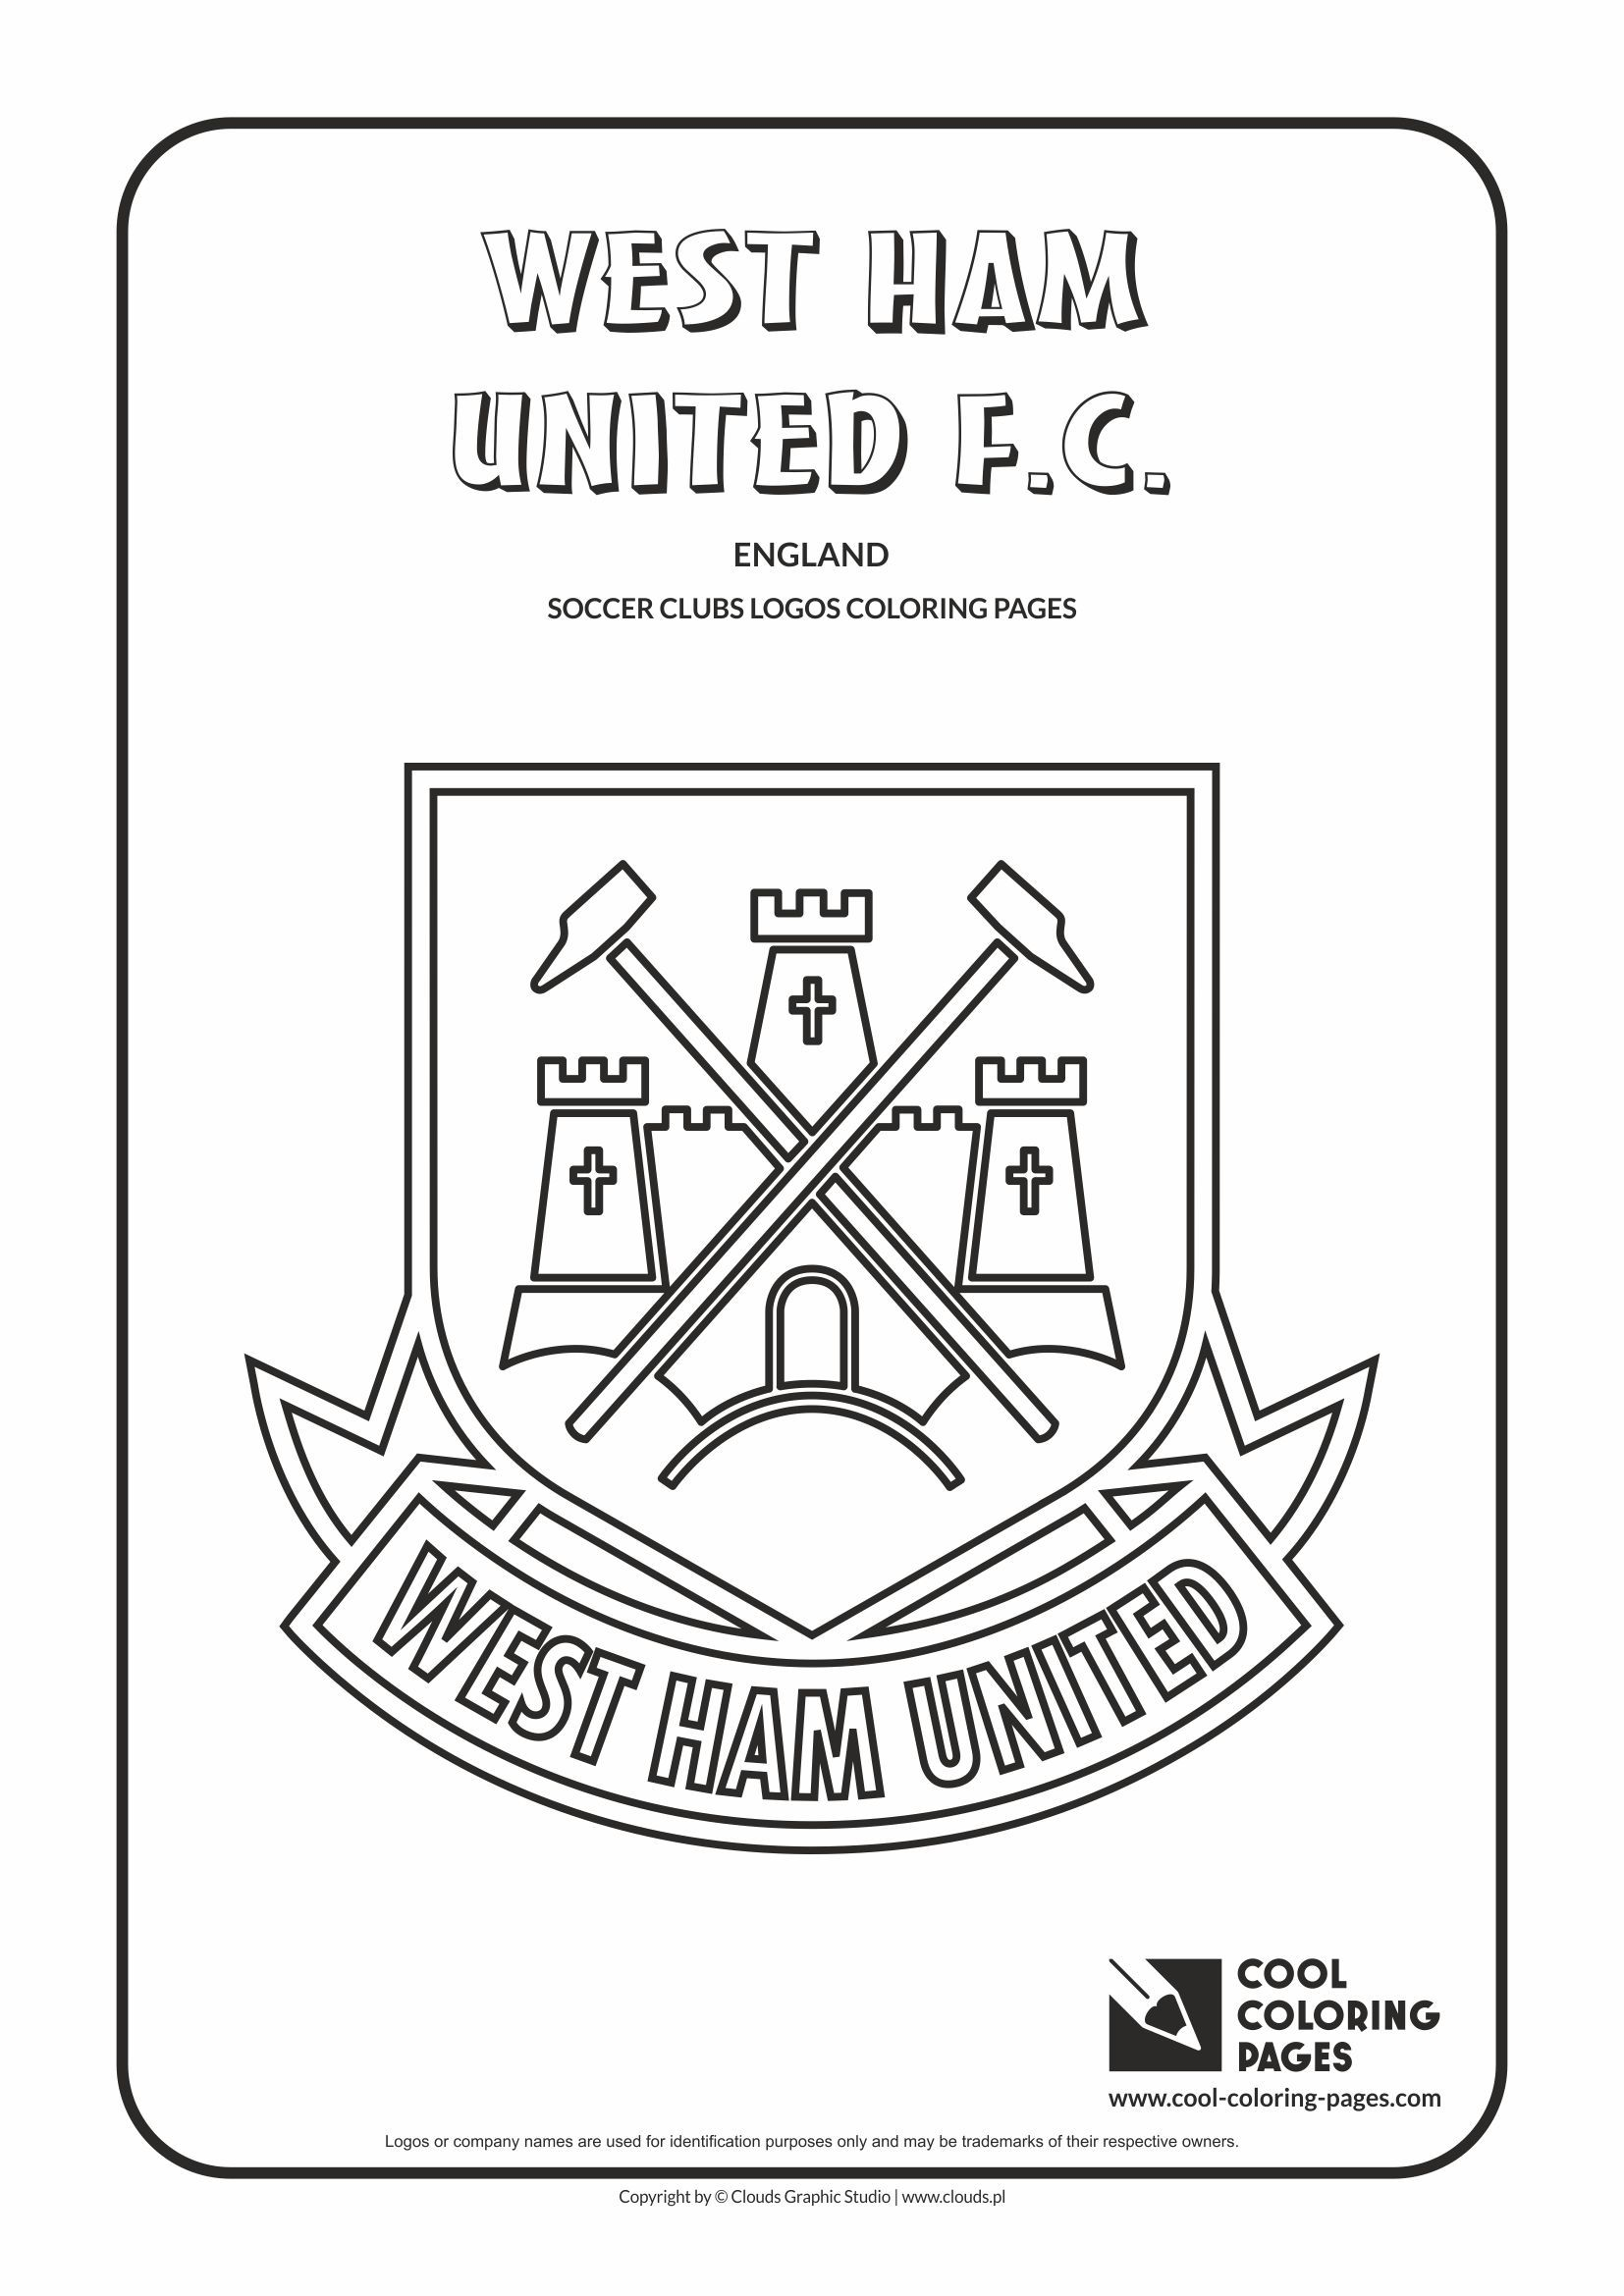 Cool Coloring Pages - Soccer Clubs Logos / West Ham United F.C. logo ...